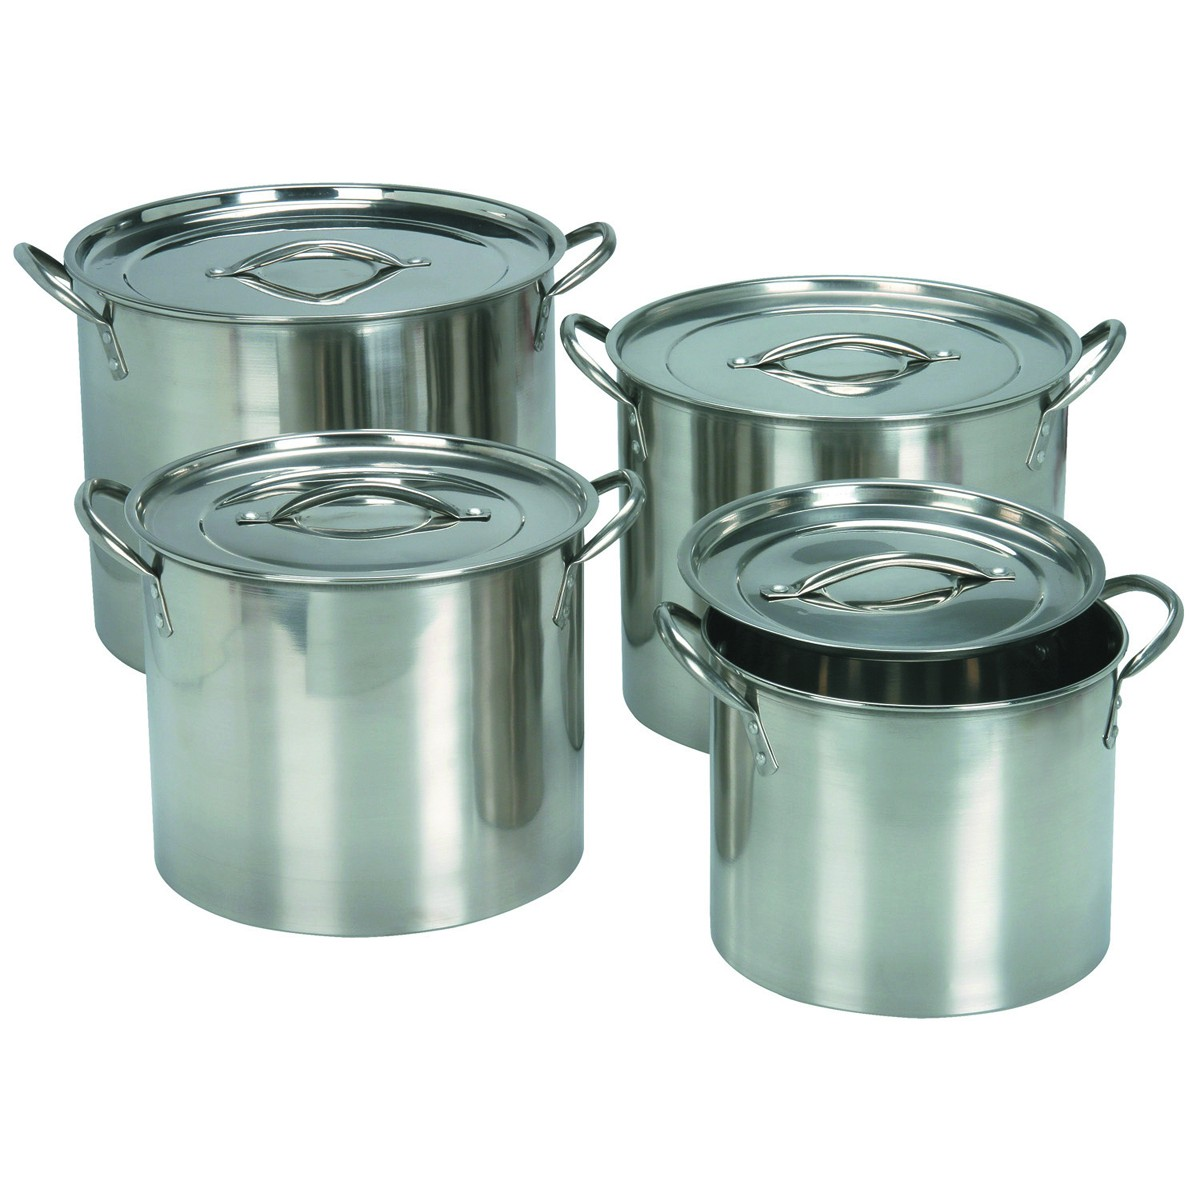 Stainless Steel Cooking Pots Images